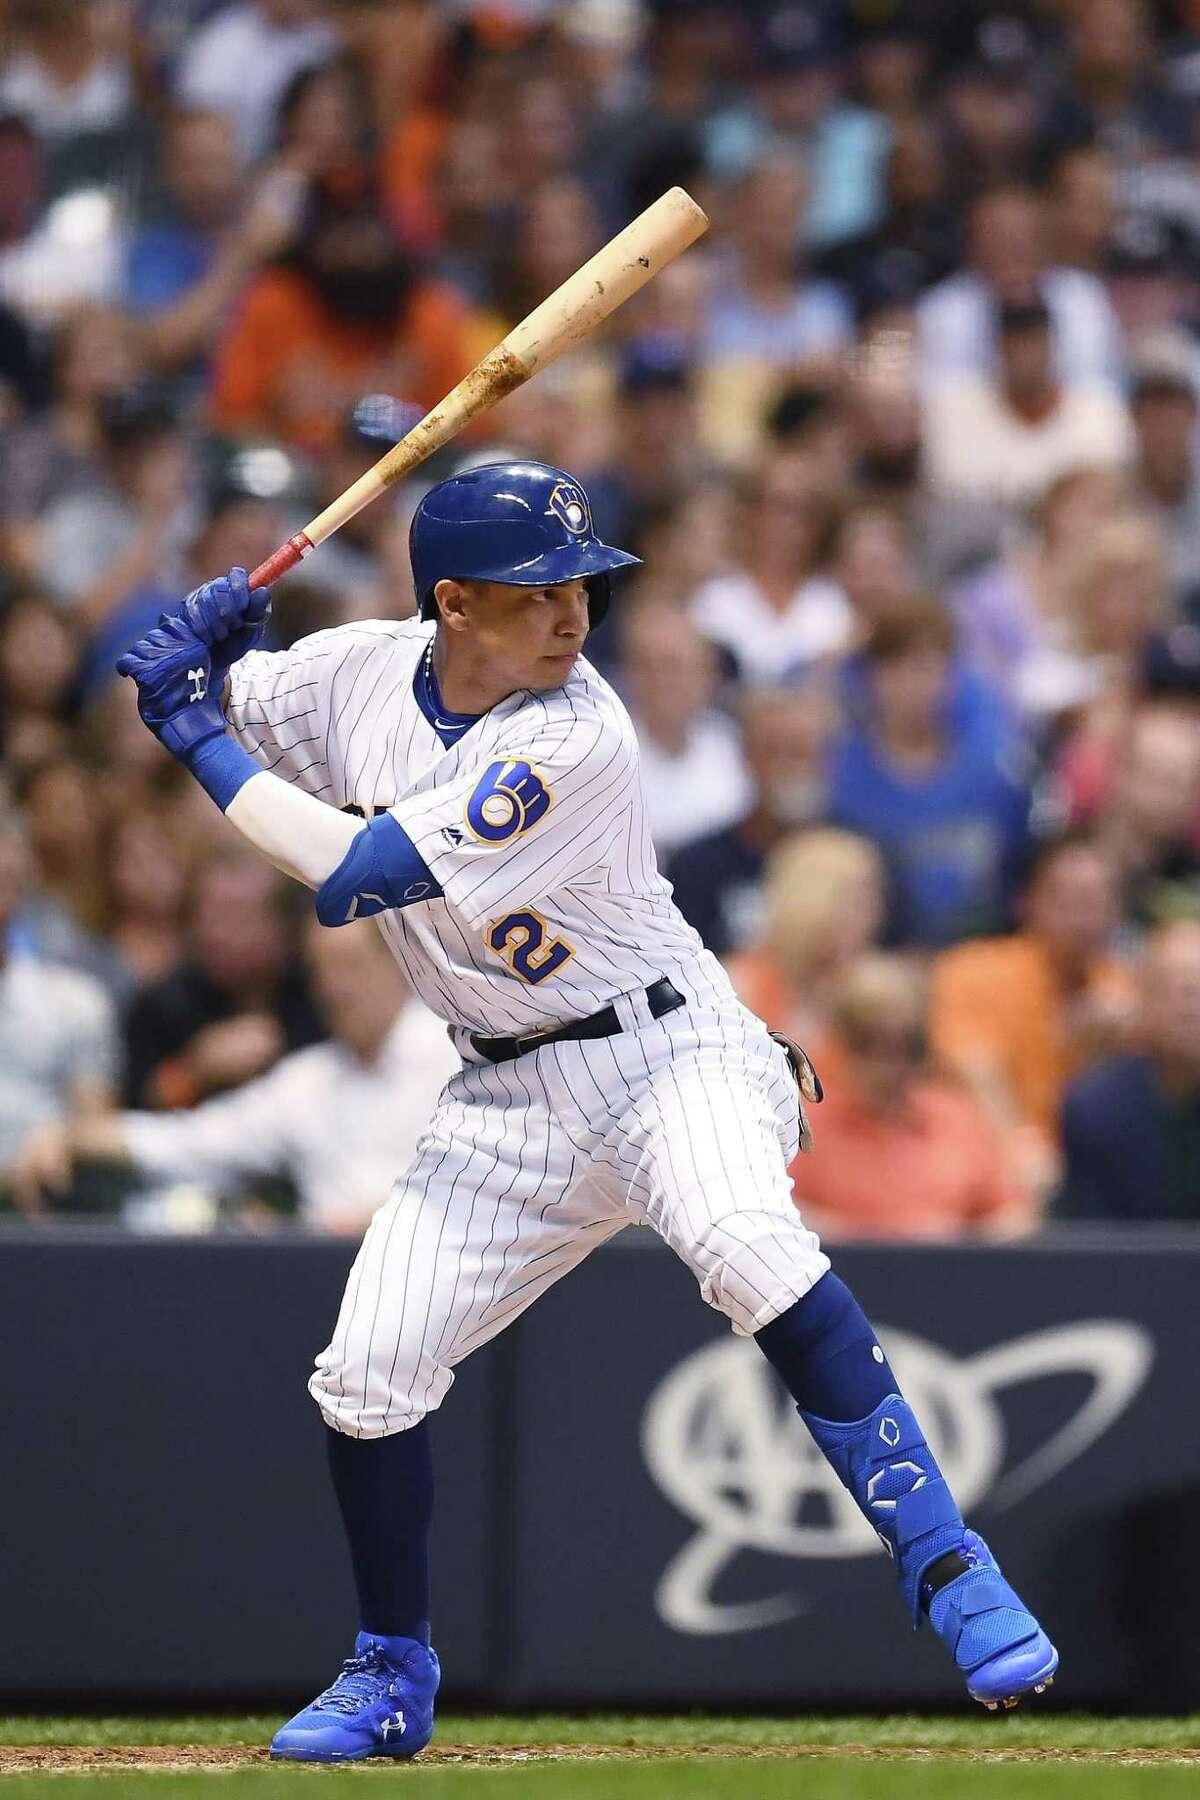 MILWAUKEE, WISCONSIN - JULY 12: Mauricio Dubon #2 of the Milwaukee Brewers at bat during a game against the San Francisco Giants at Miller Park on July 12, 2019 in Milwaukee, Wisconsin. The Giants defeated the Brewers 10-7 in 10 innings. (Photo by Stacy Revere/Getty Images)